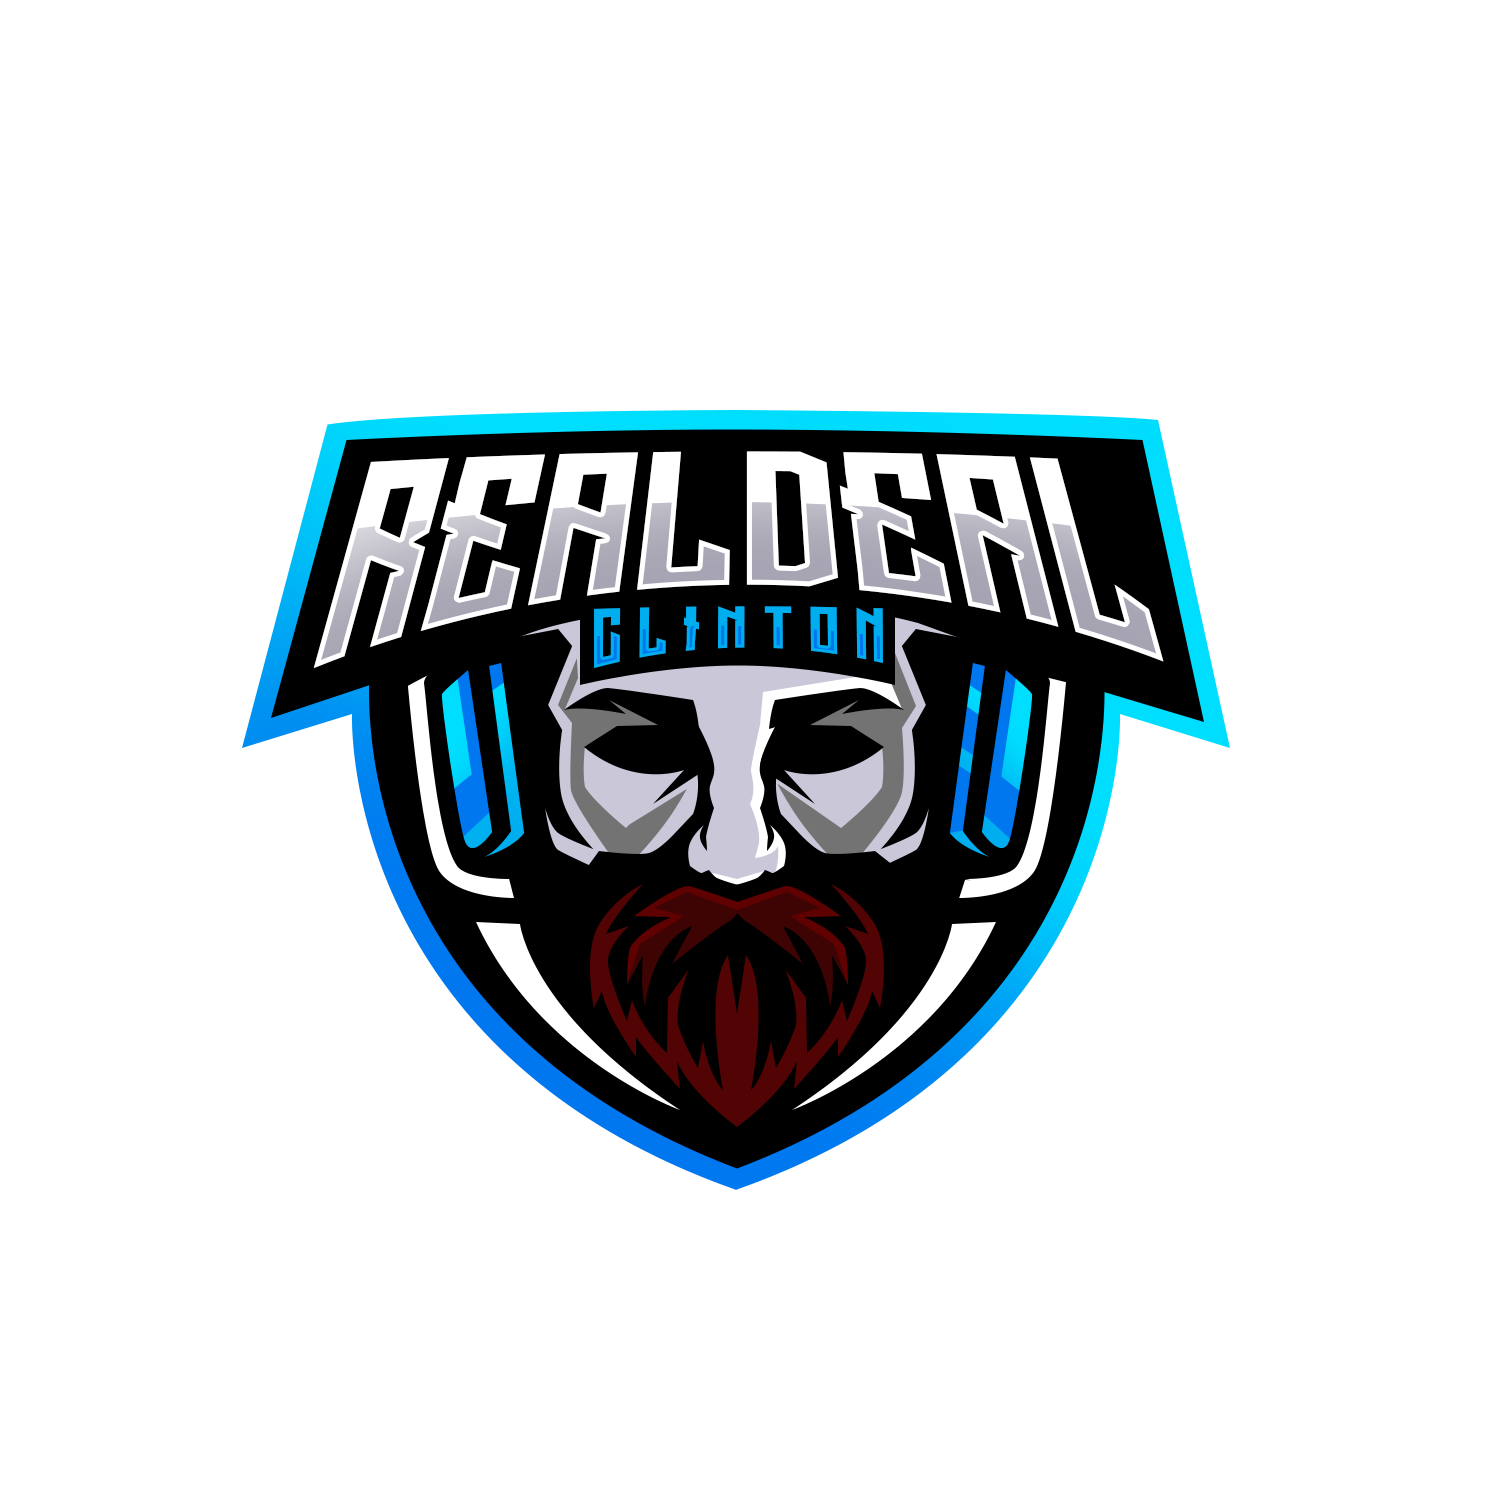 Looking for cool easy logo for gaming channel!